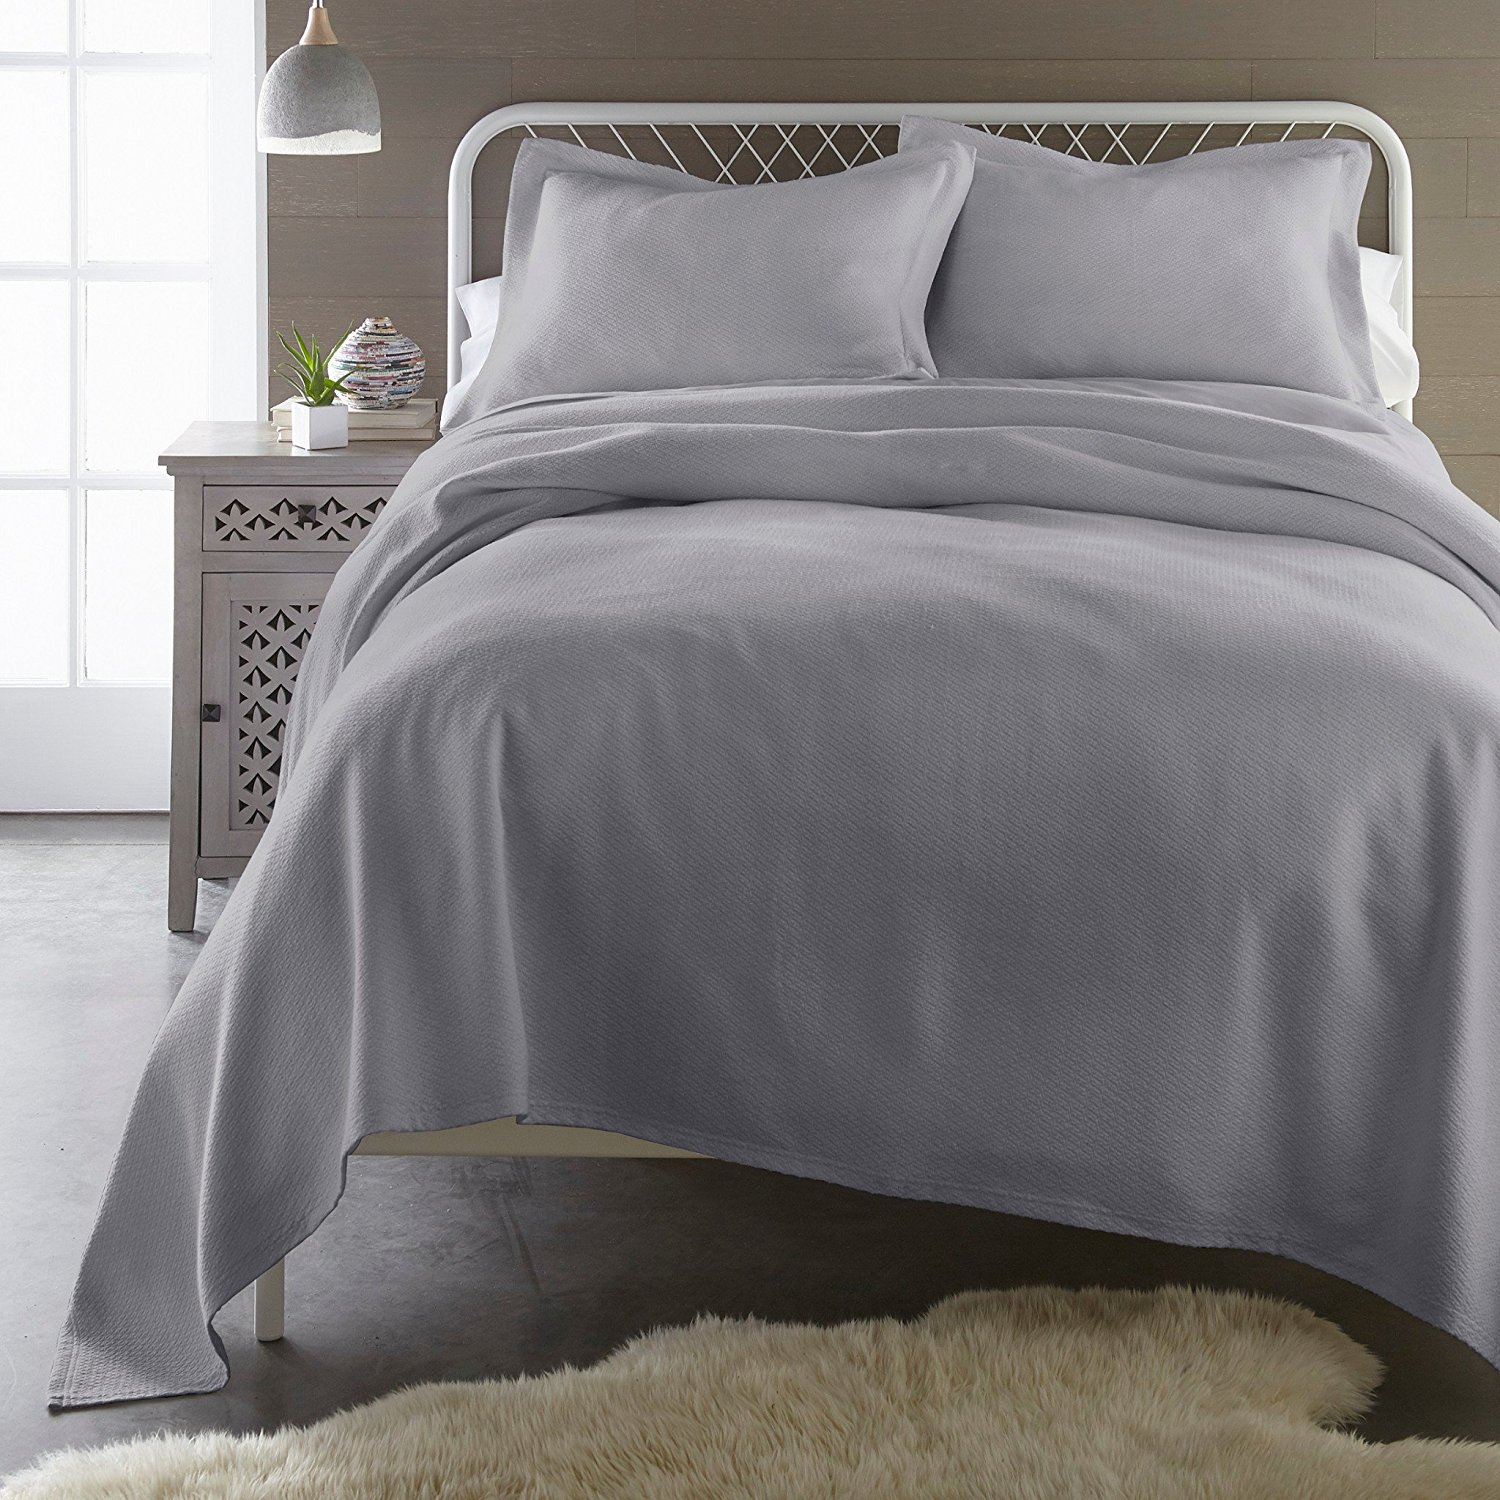 100 Cotton Quilted Coverlet Set Gavin 3 Piece Solid Woven Jacquard Matelasse Bedding Cover Full Queen Gray Bedspread Coverlet Sets